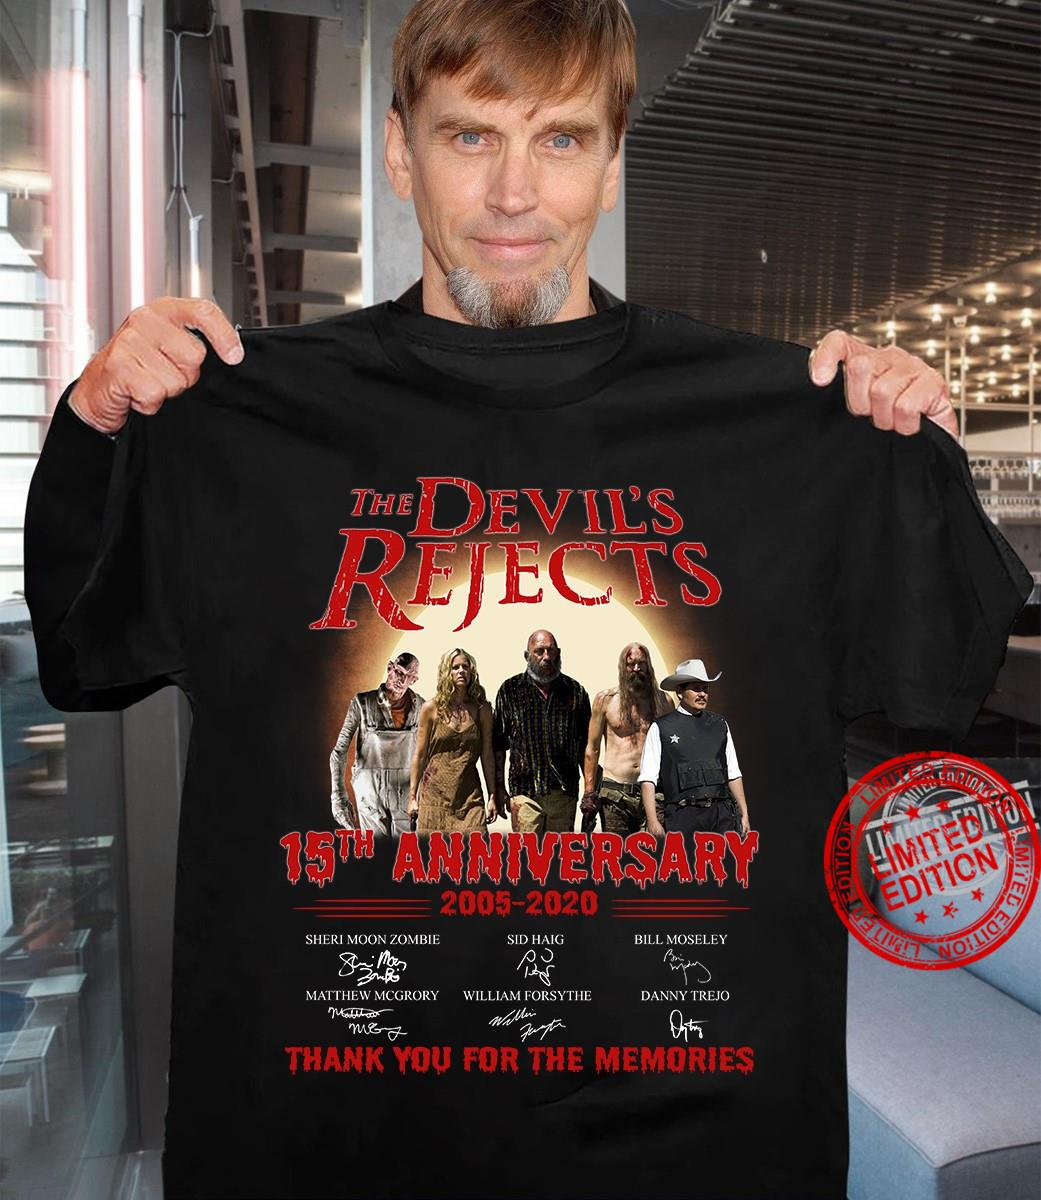 The Devil's Rejects 15th Anniversary 2005-2020 Thank You For The Memories Shirt